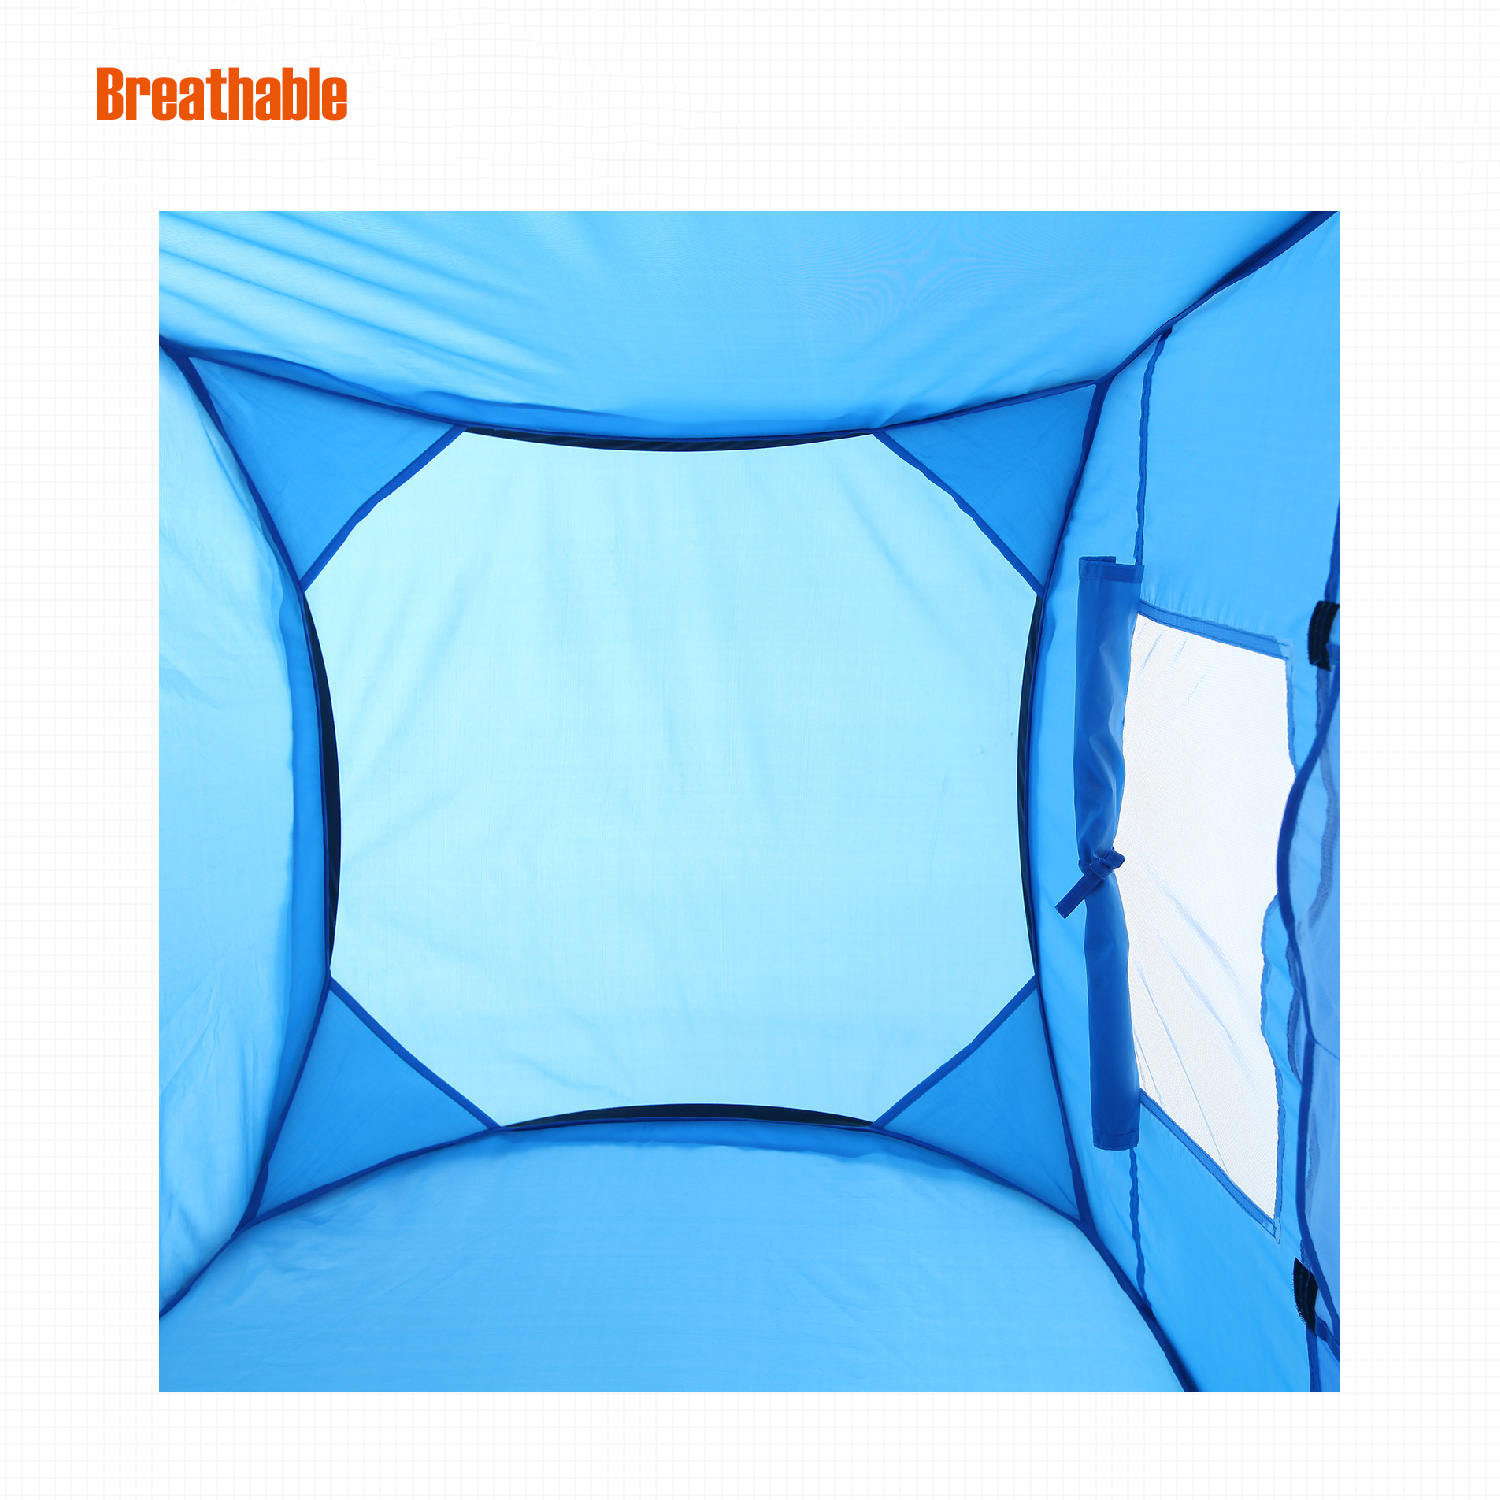 KingCamp Camping Shower Toilet Tent Outdoor Privacy Portable Change ...